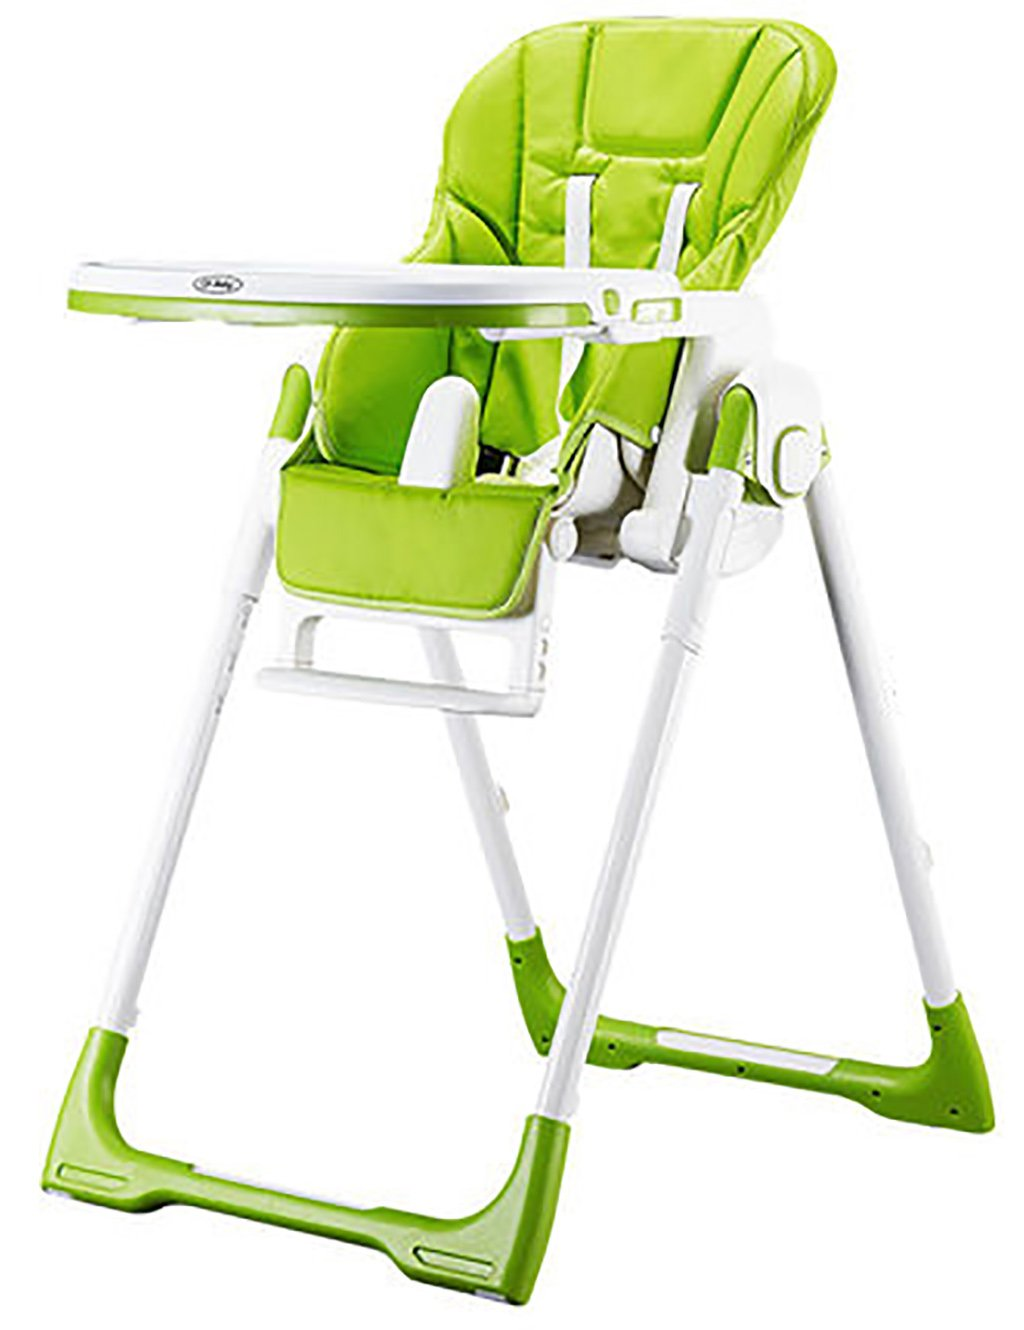 XWZ Baby Chairs Dining Chairs And Children 's Multi - Functional Portable Dining Chairs Can Be Folded Baby Chairs